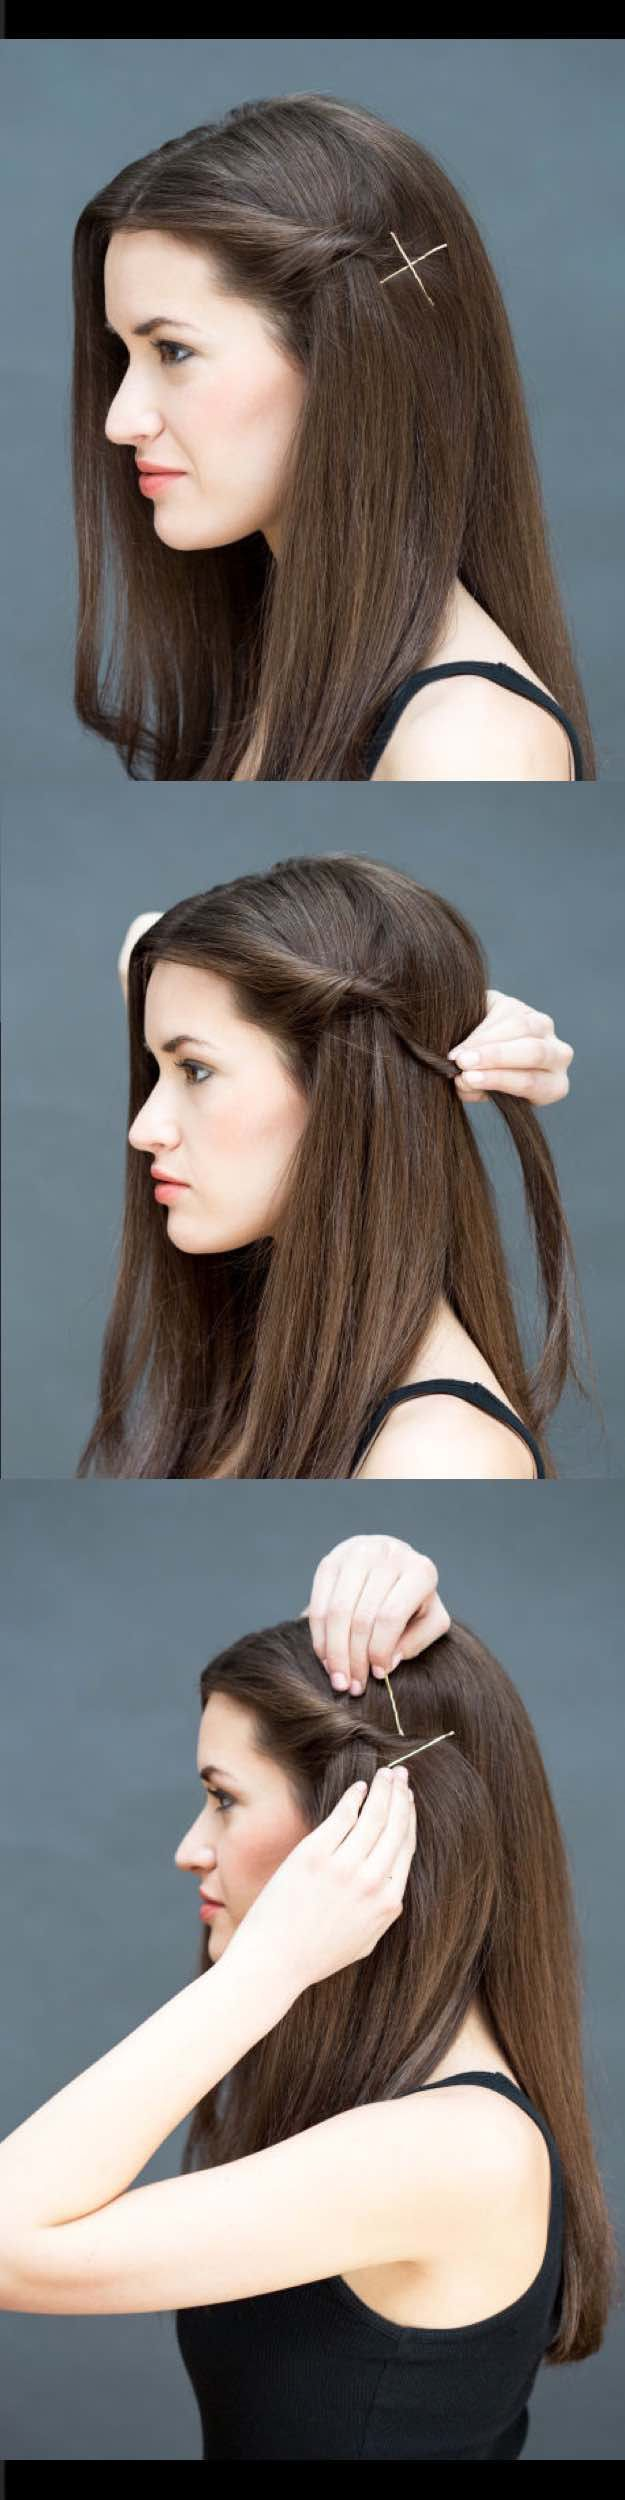 Quick and Easy Hairstyles for Straight Hair - The Twist-and-Pin - Popular Haircuts and Simple ...